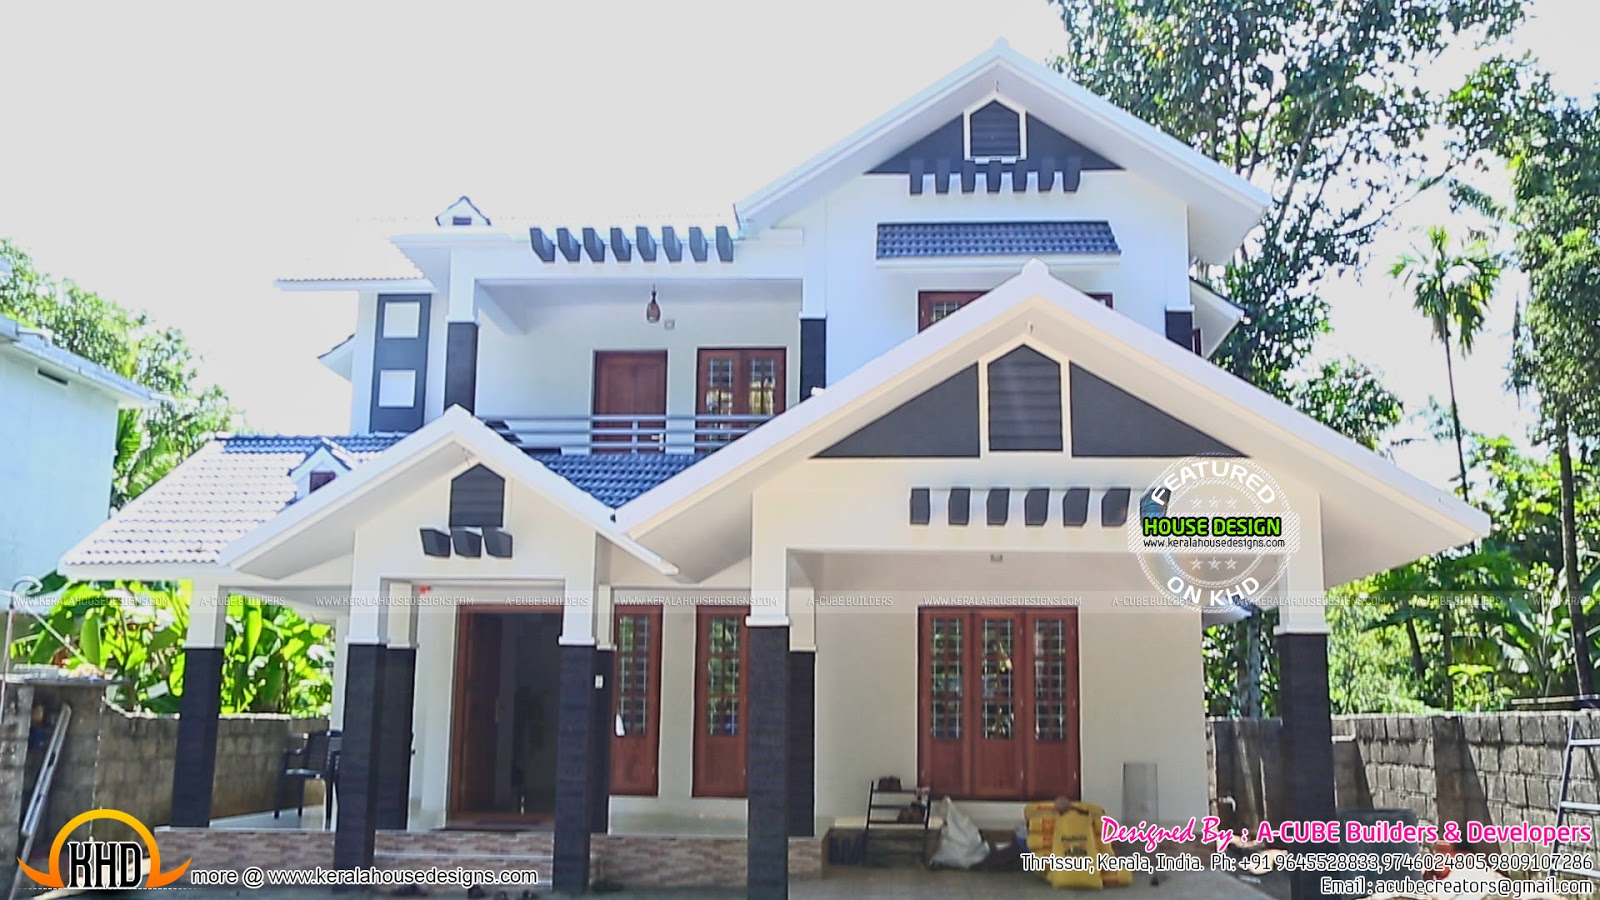 New house plans for 2016 starts here kerala home design and floor plans - New house design ...